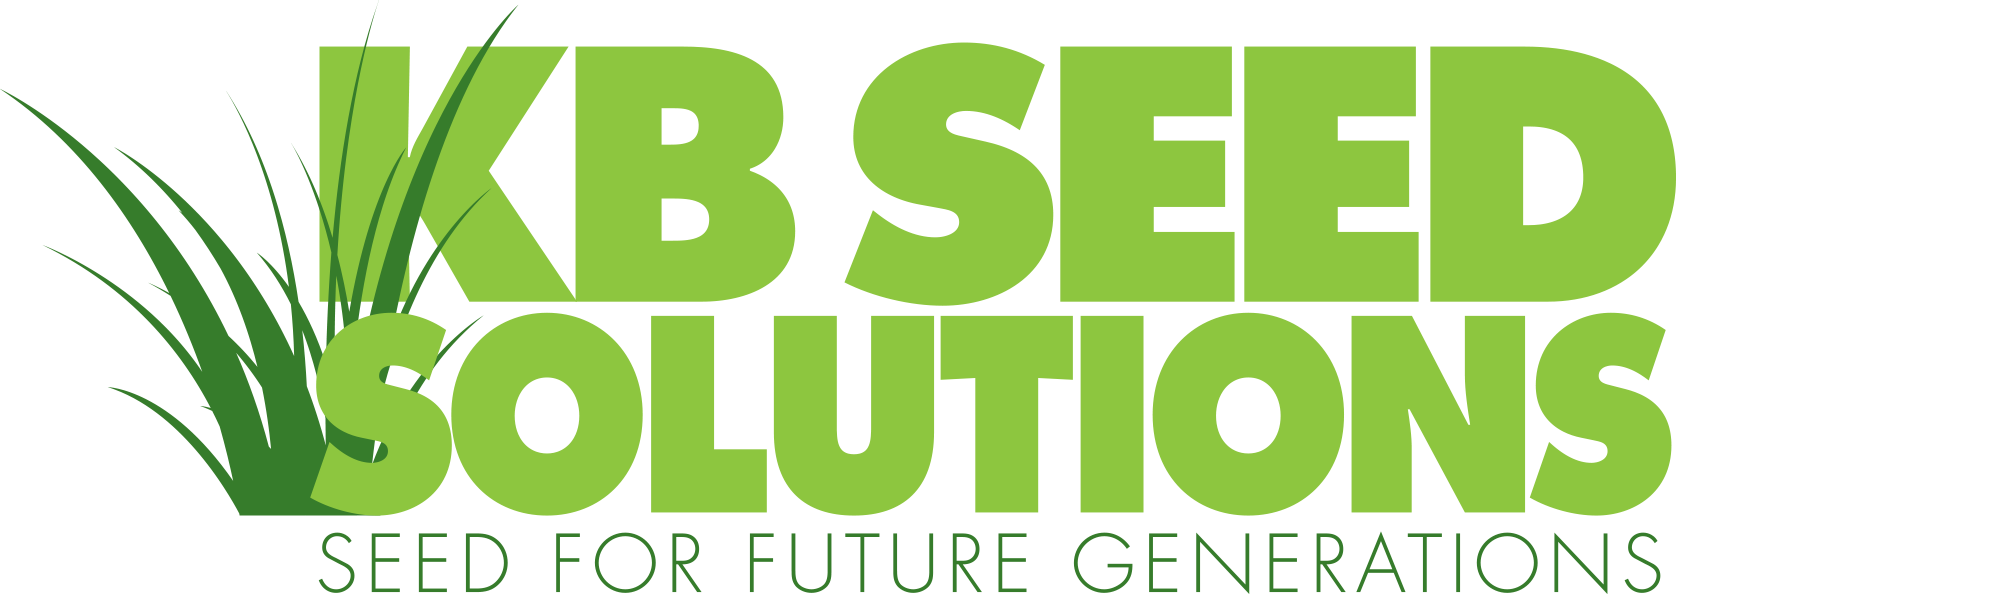 kb-seed-solutions-logo-tagline-center.png